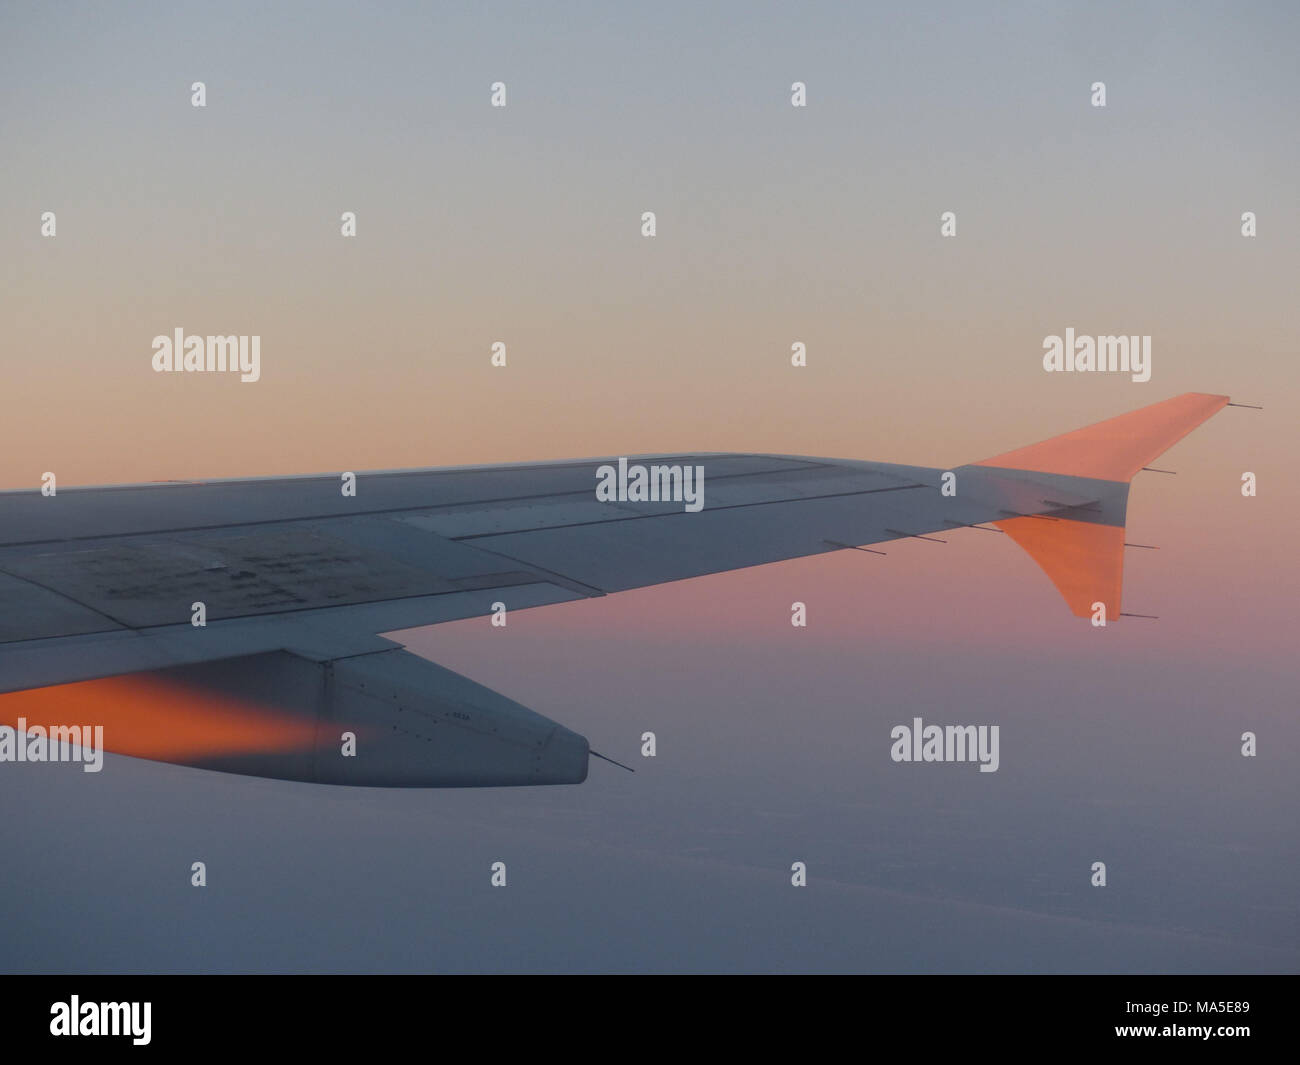 Wing of A 380 Airbus illuminated by rising sun - Stock Image